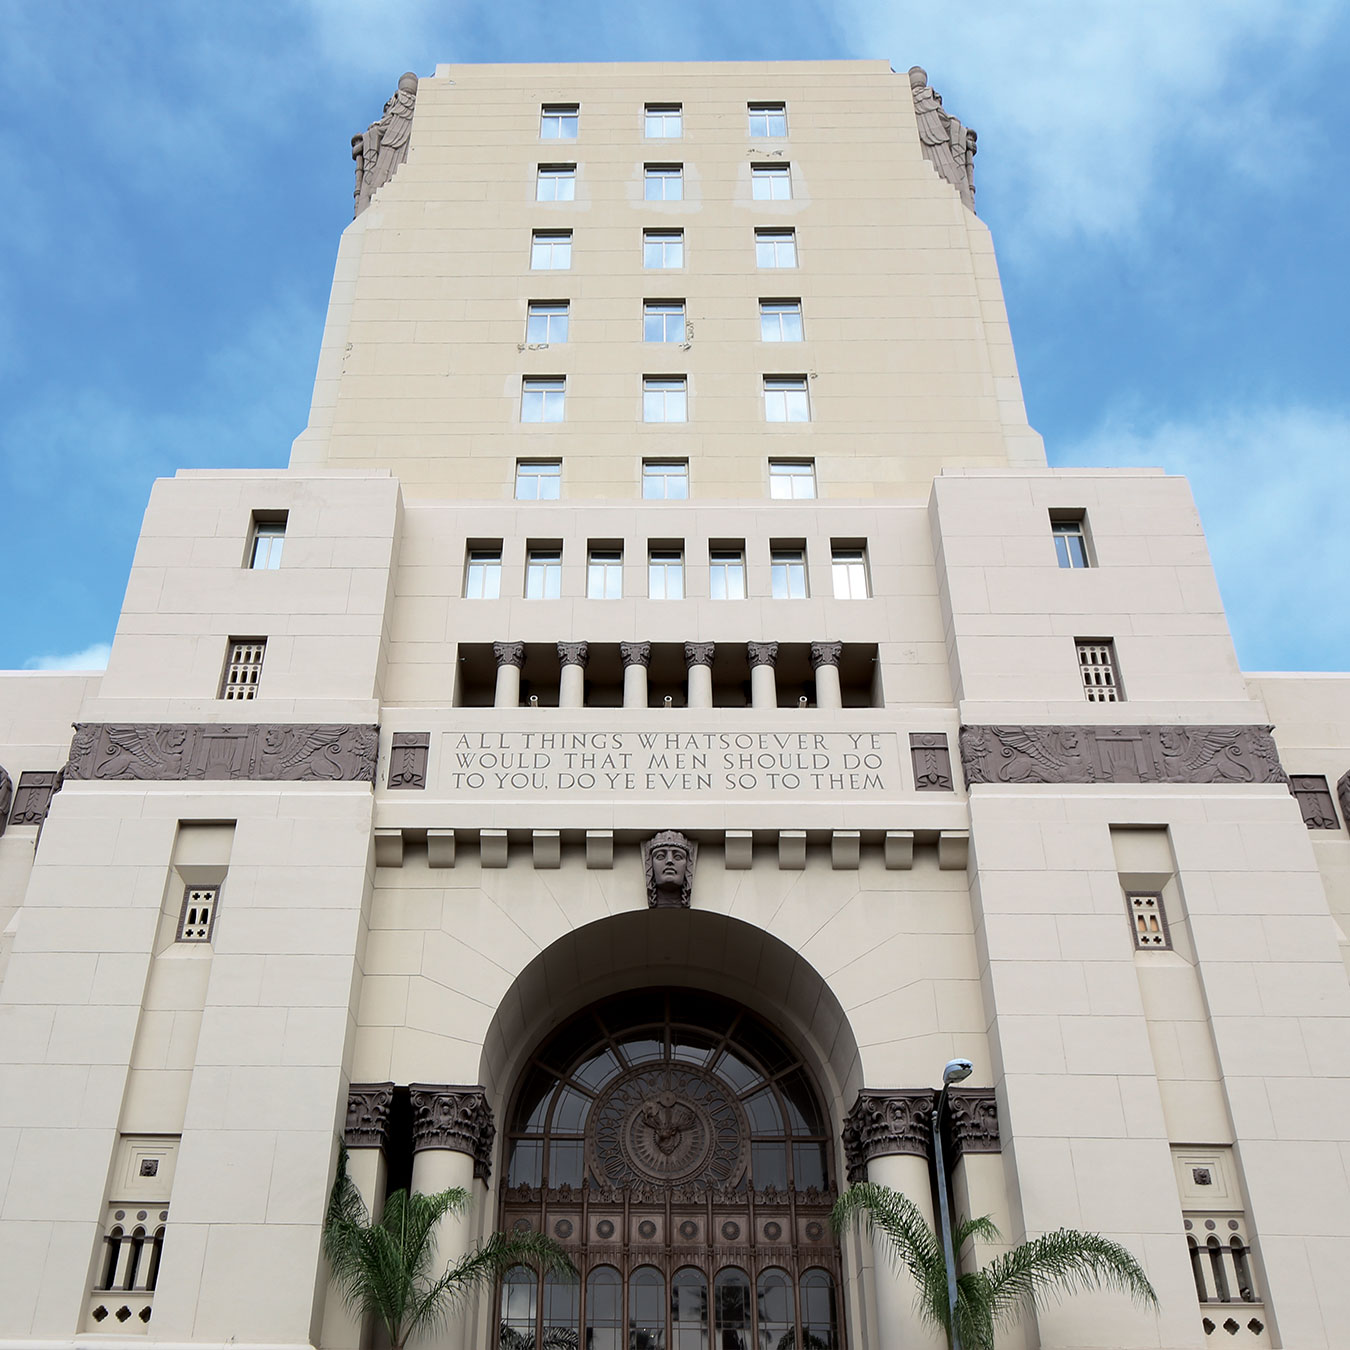 The MacArthur Exterior Facade and Tower in Los Angeles with Blue Sky